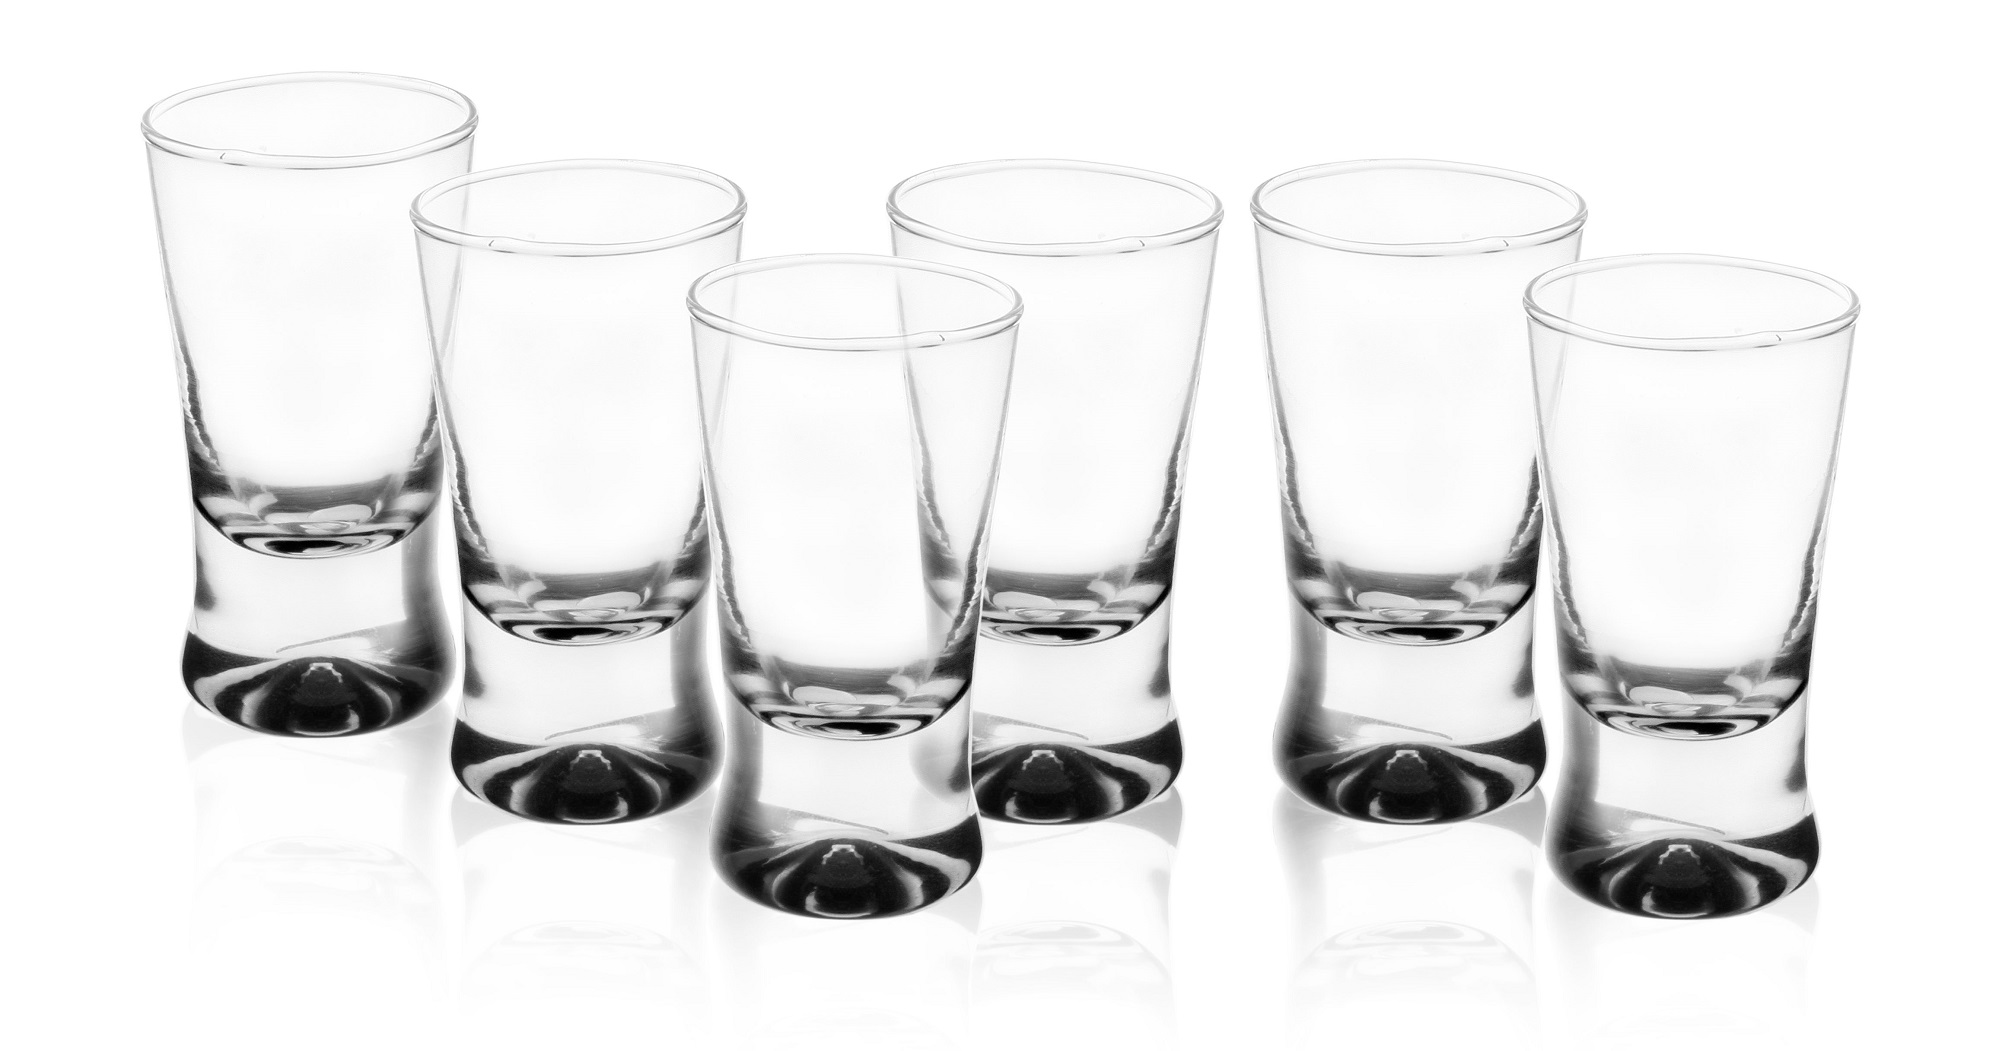 GLASMARK Sada 6 panáků na vodku - 25ml